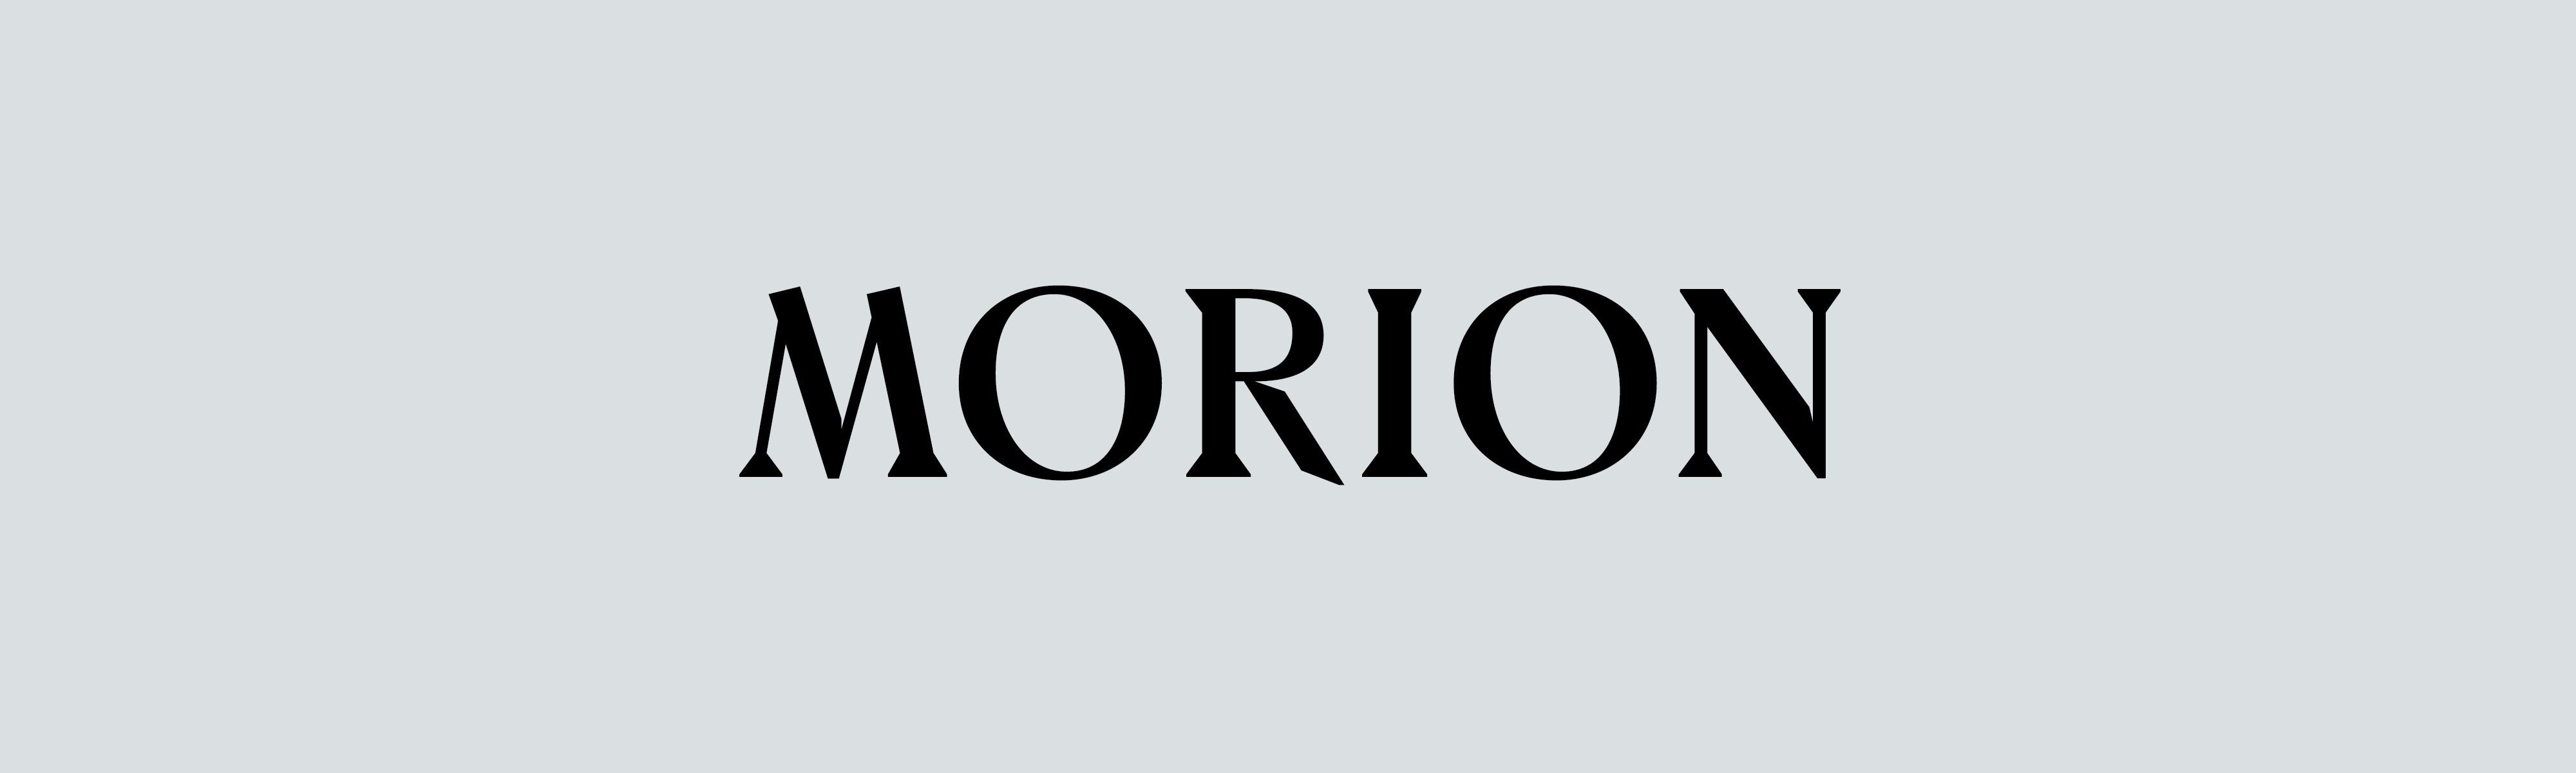 Morion | The Designers Foundry